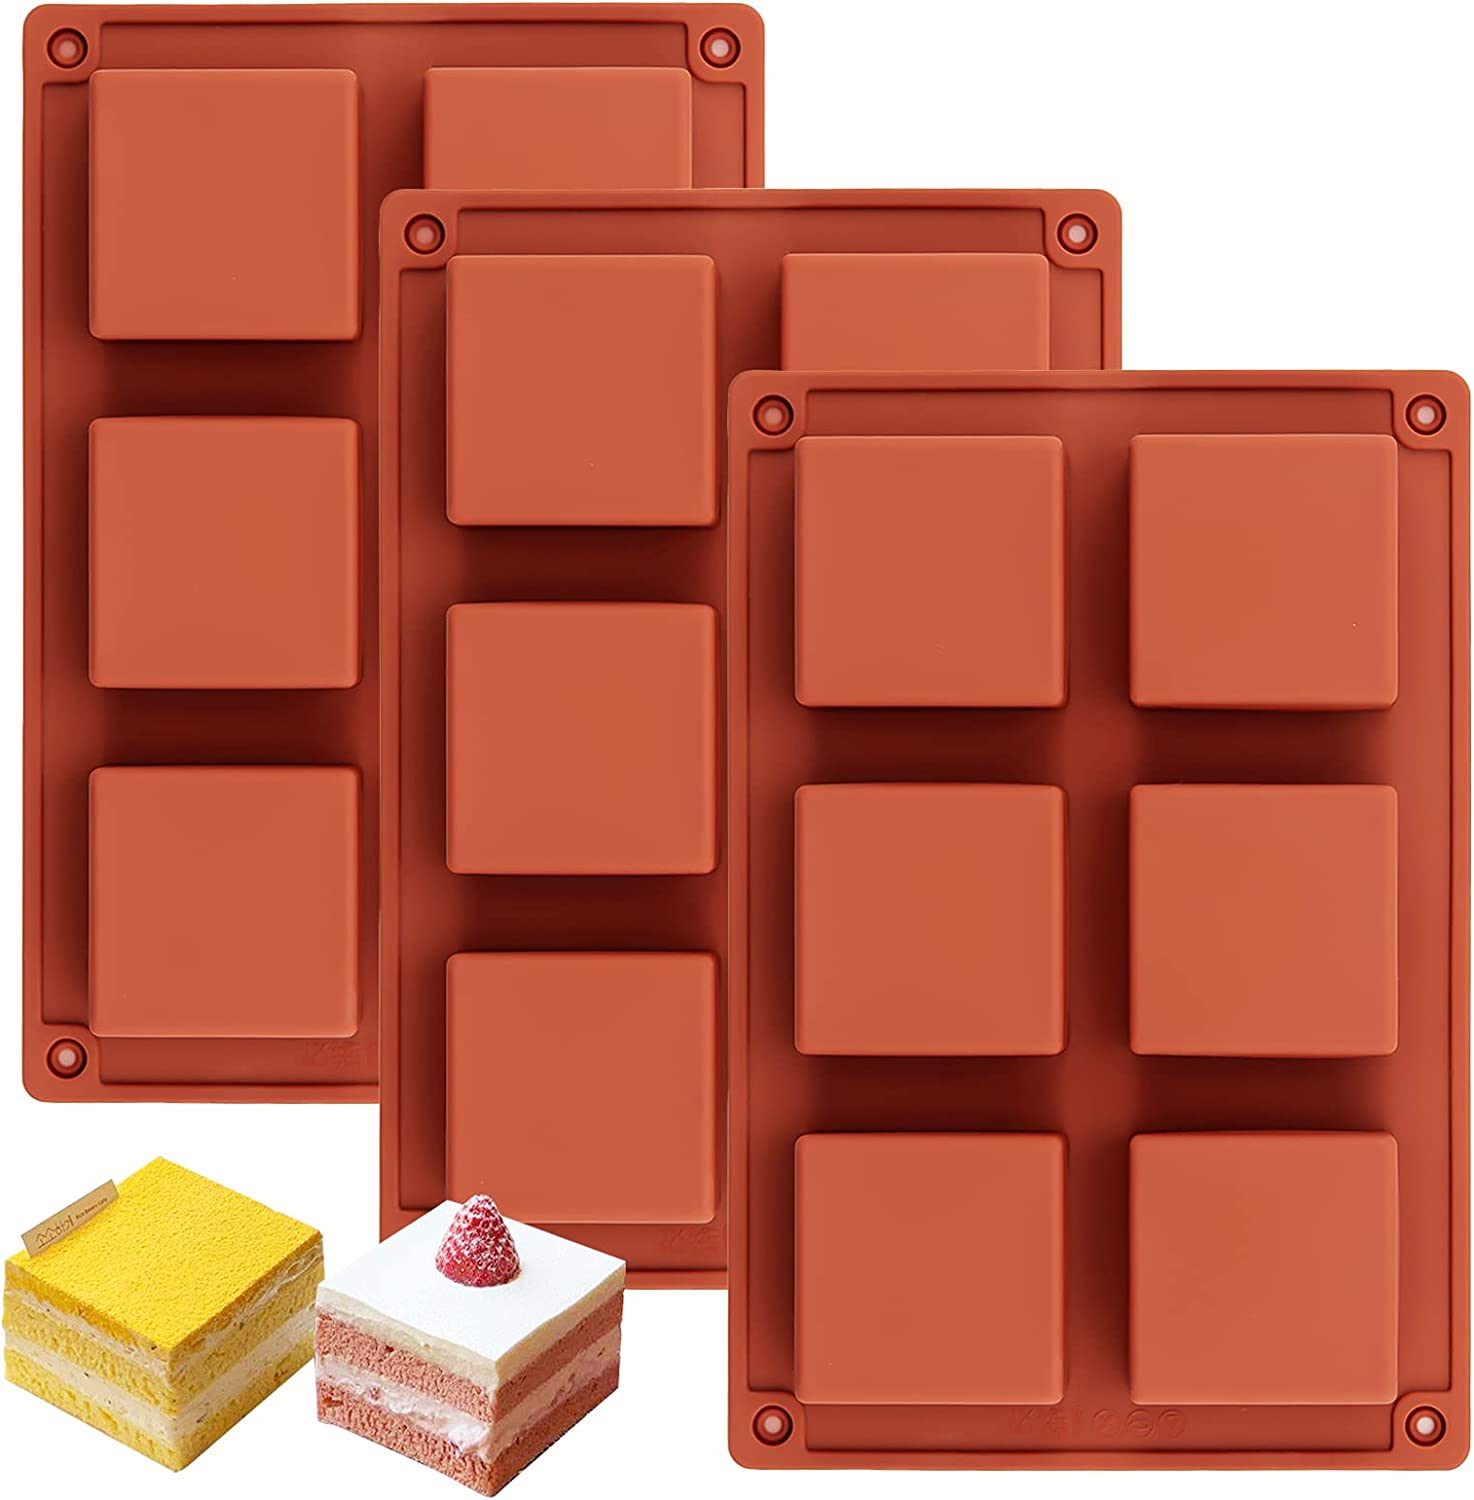 Ocmoiy 3 Pack Square Chocolate Candy Mold | 2